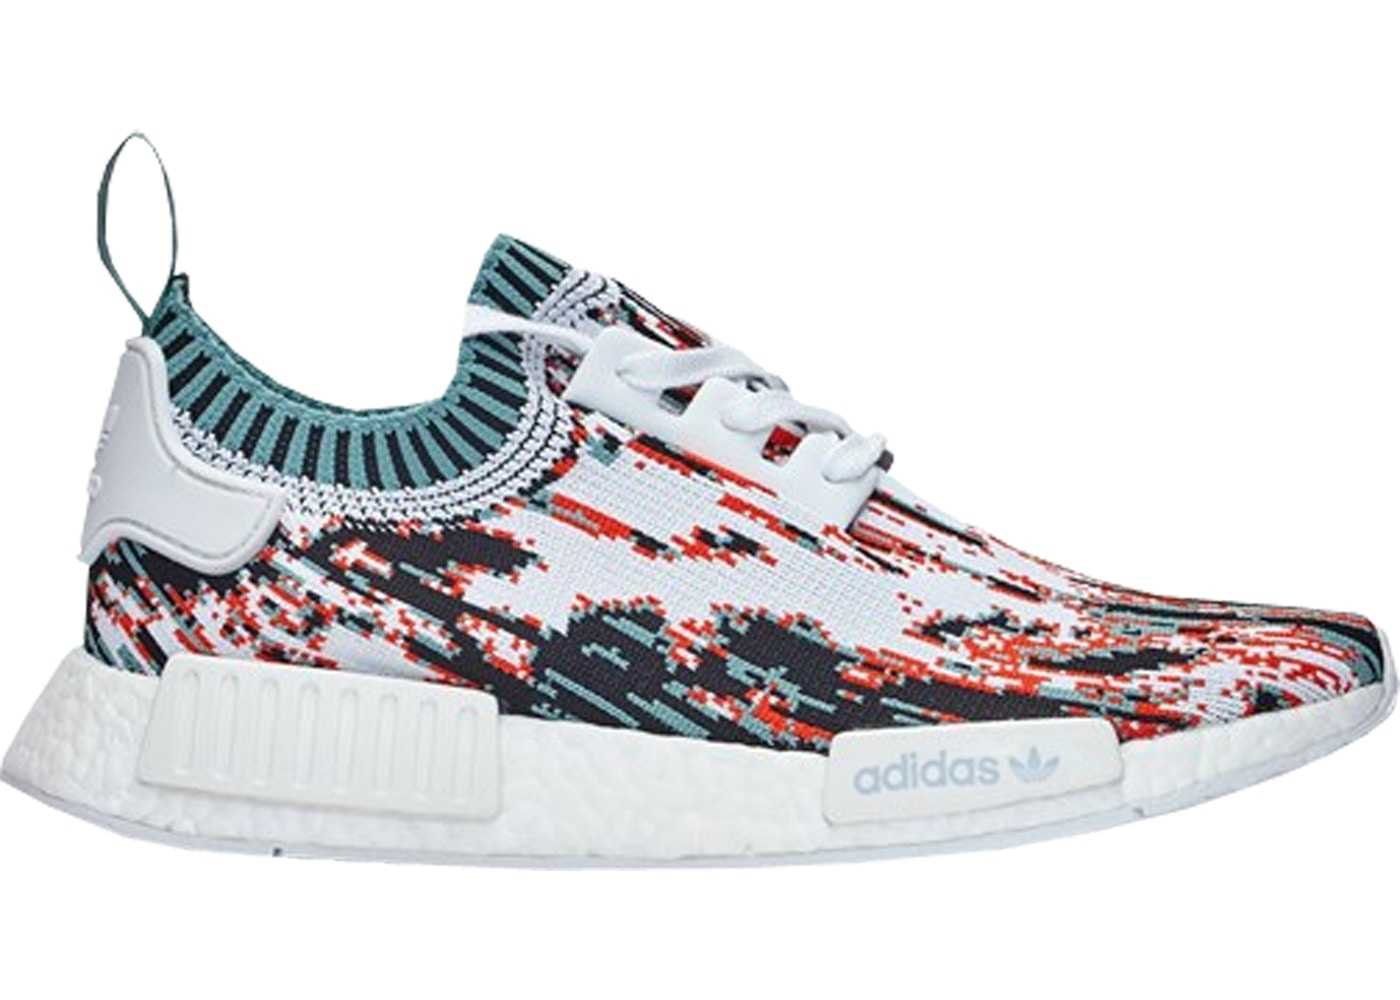 0851a9312 adidas NMD Size 13 Shoes - Last Sale